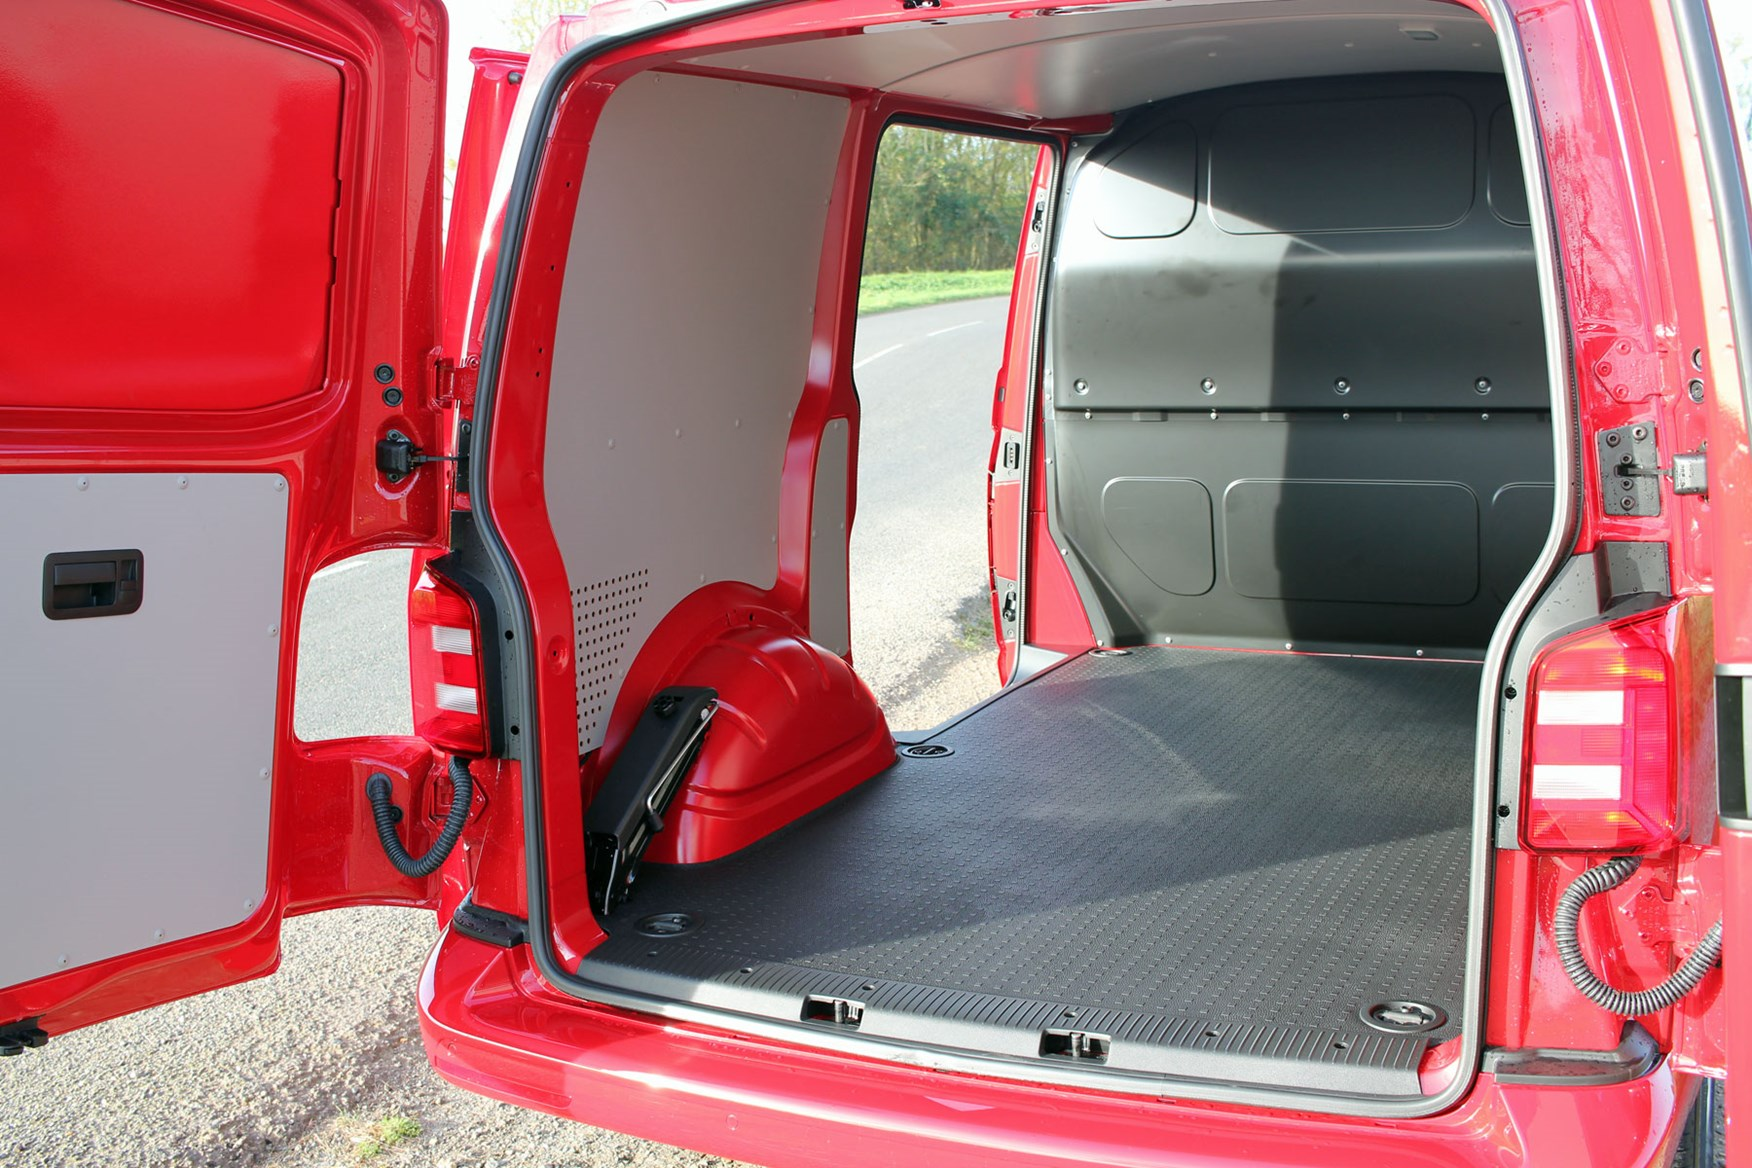 VW Transporter T6 TSI 150 review - load area, payload